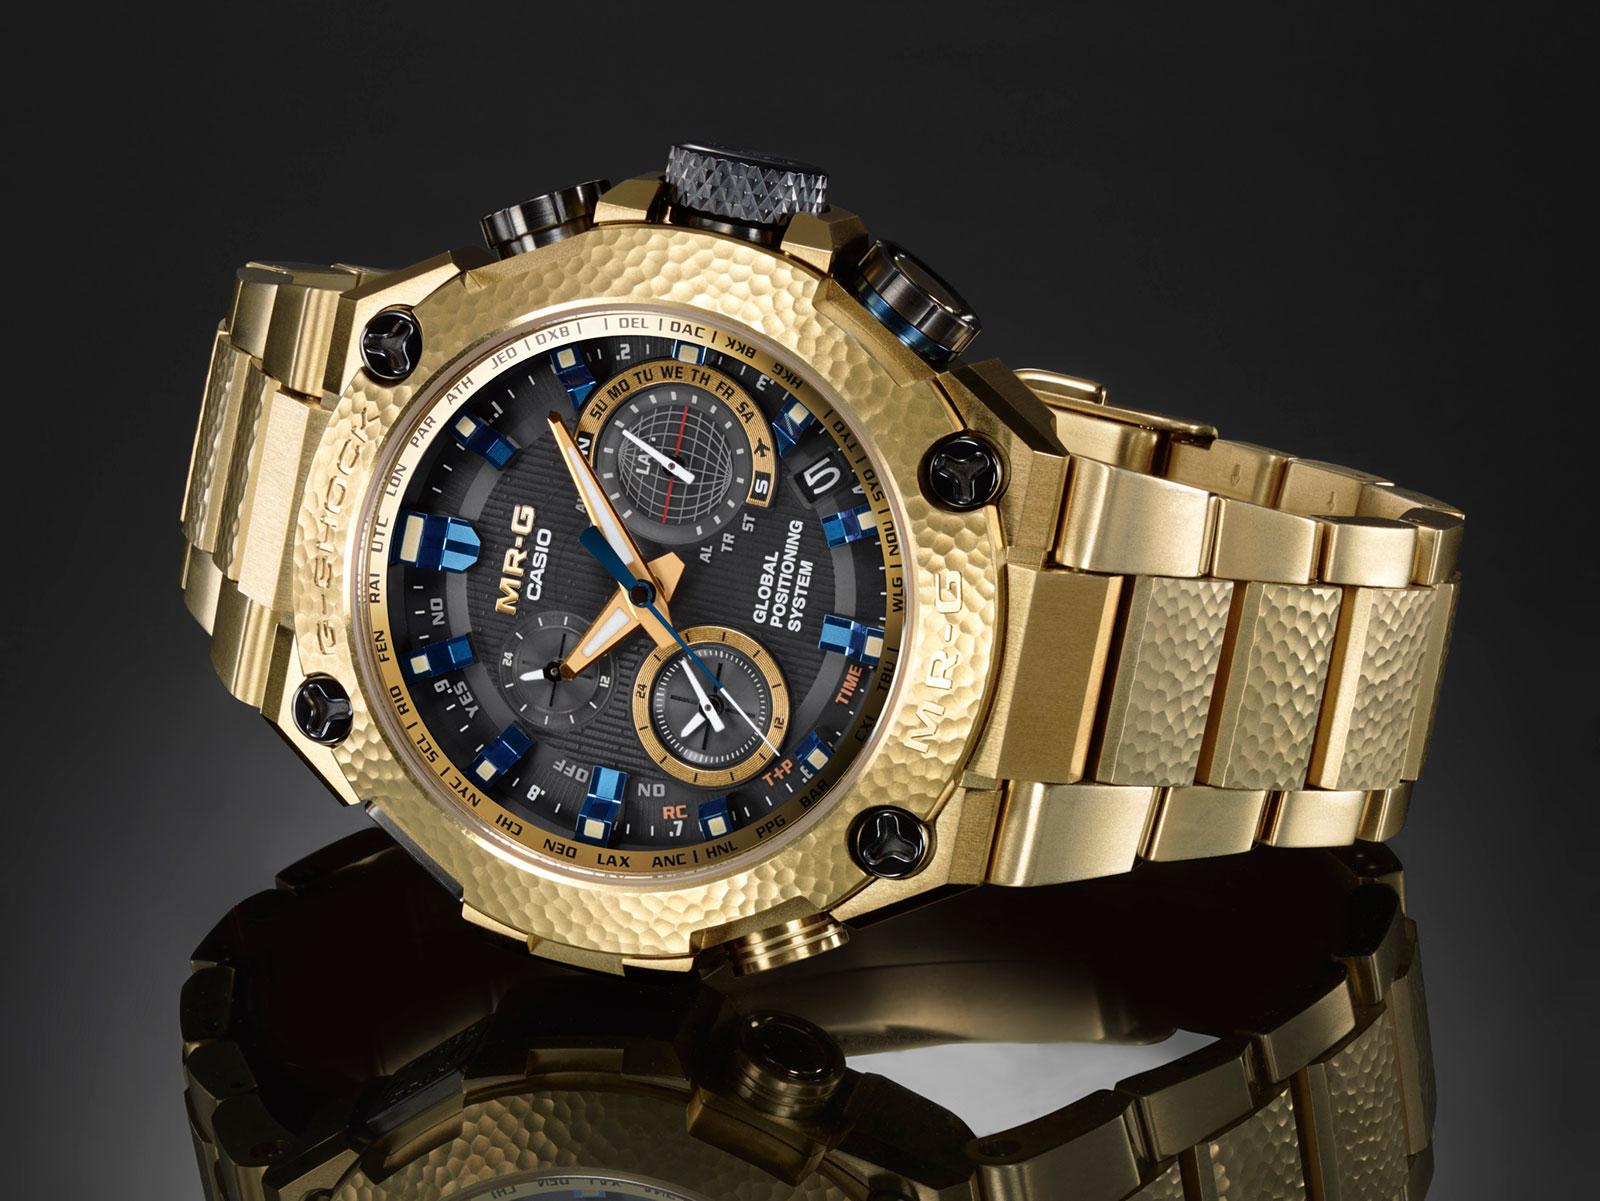 Casio G-Shock MR-G Gold Hammer Tone 1